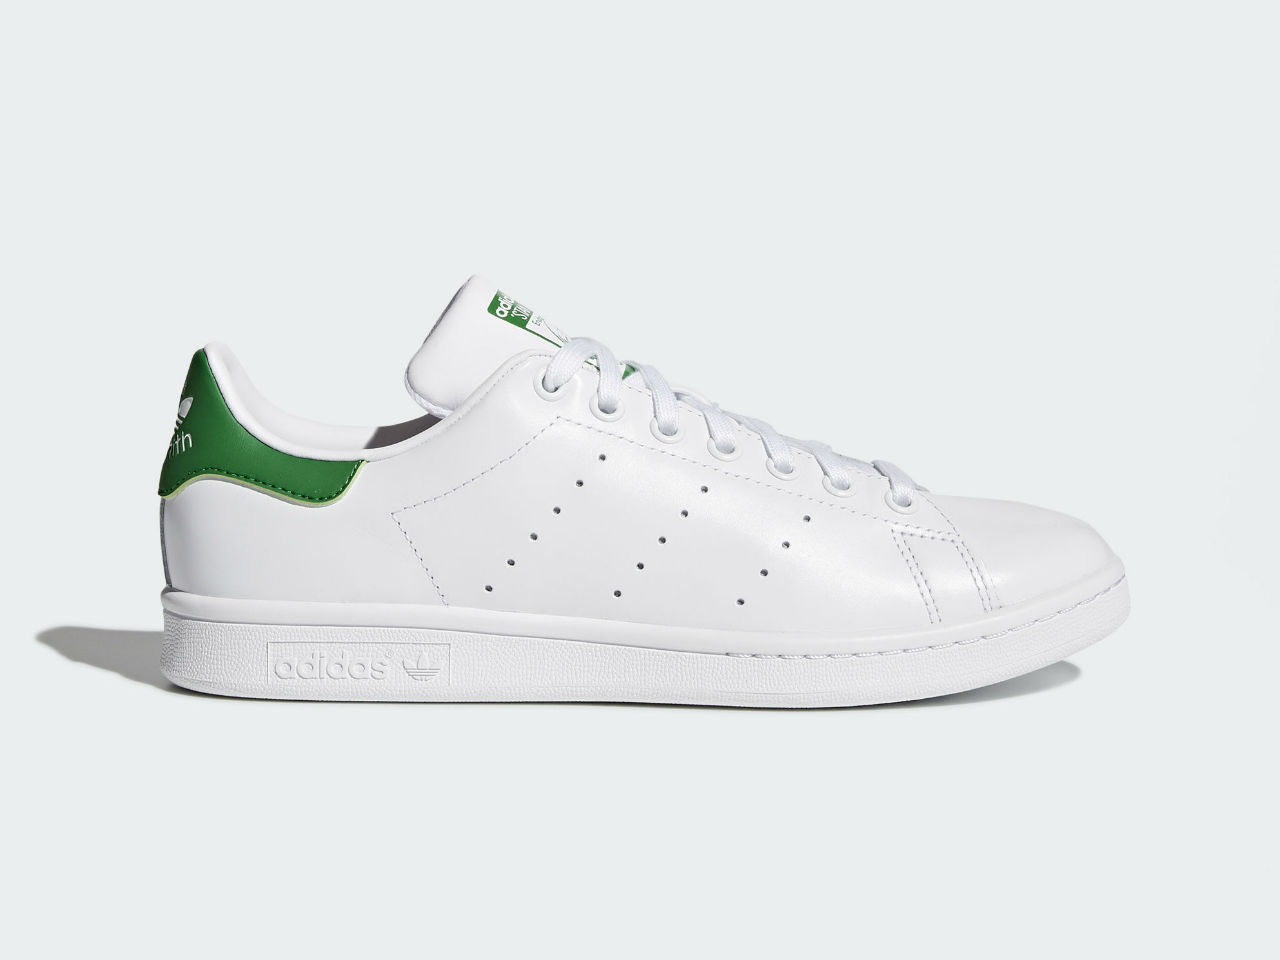 An Adidas Stan Smith sneaker: We show you tried and tested ways to clean white shoes and sneakers